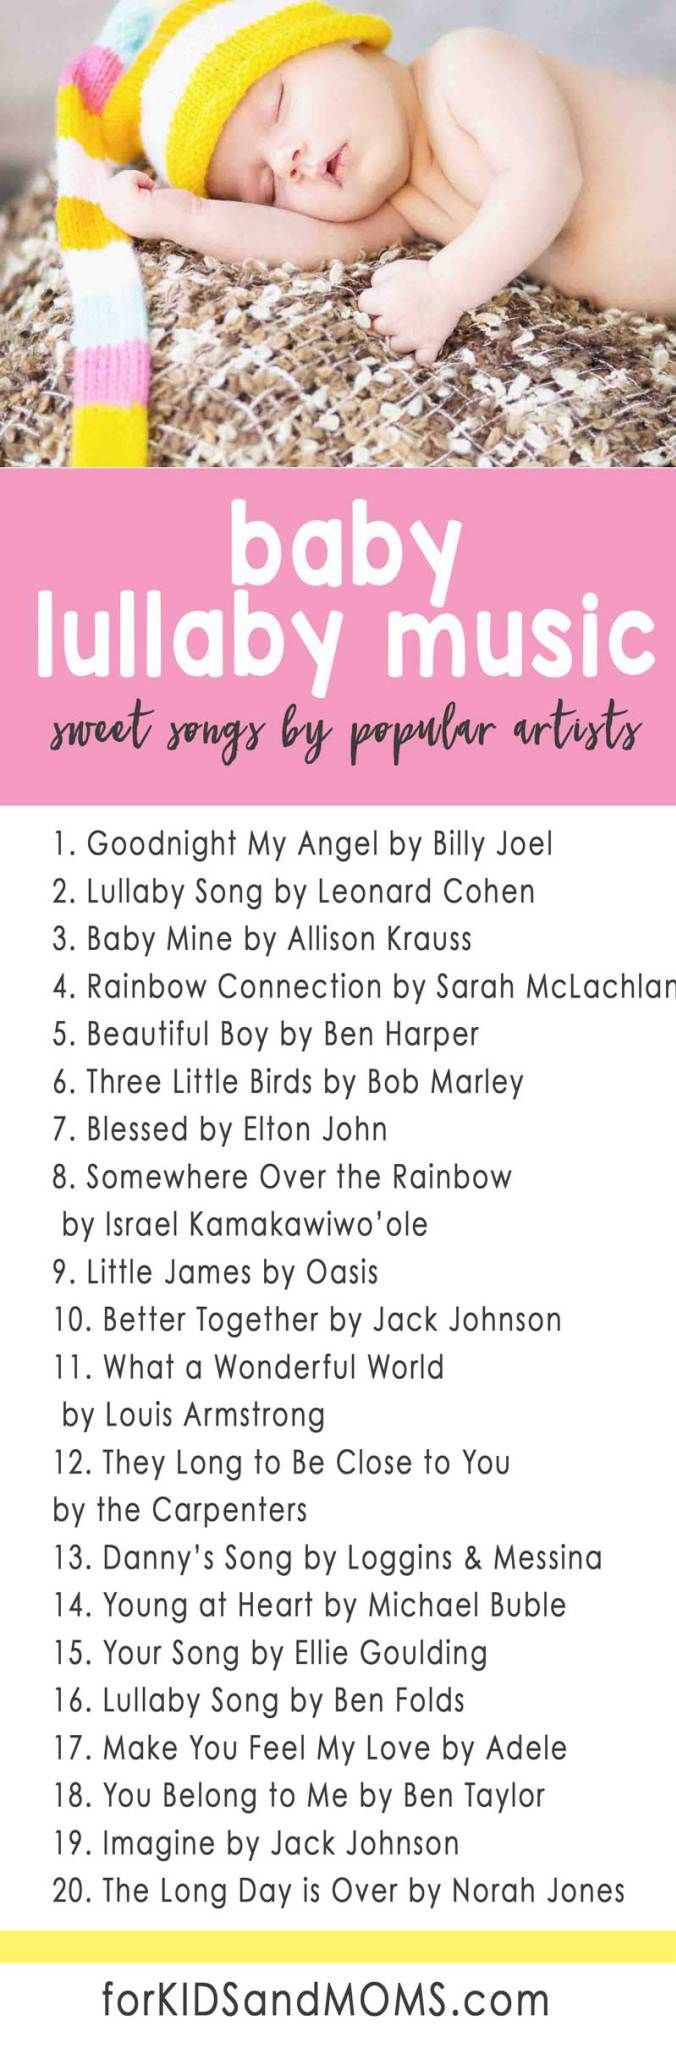 83 Amazing Songs for the Perfect Baby Shower Music Playlist